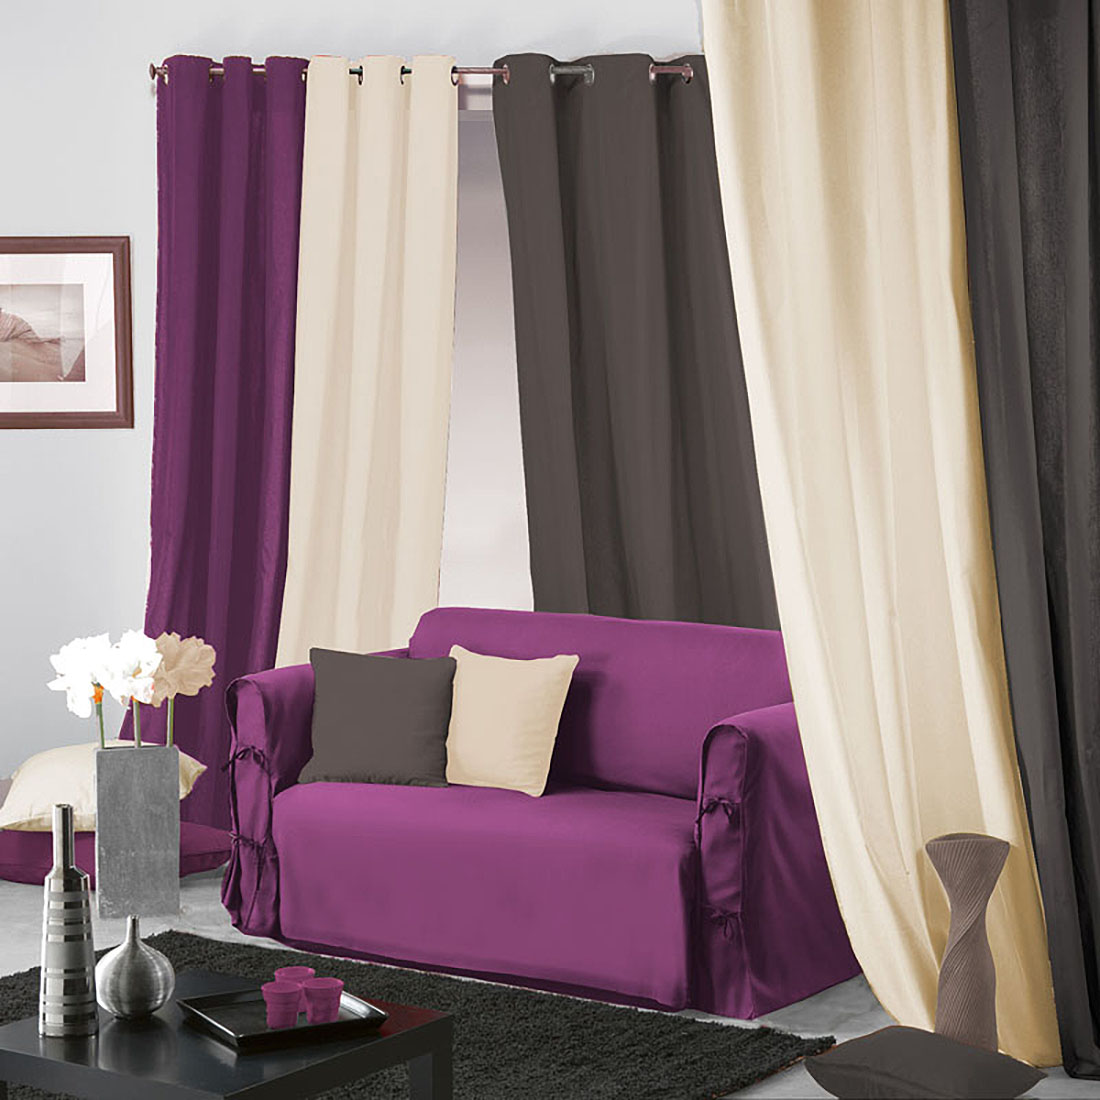 housse de canap nouettes panama prune violet autres ebay. Black Bedroom Furniture Sets. Home Design Ideas